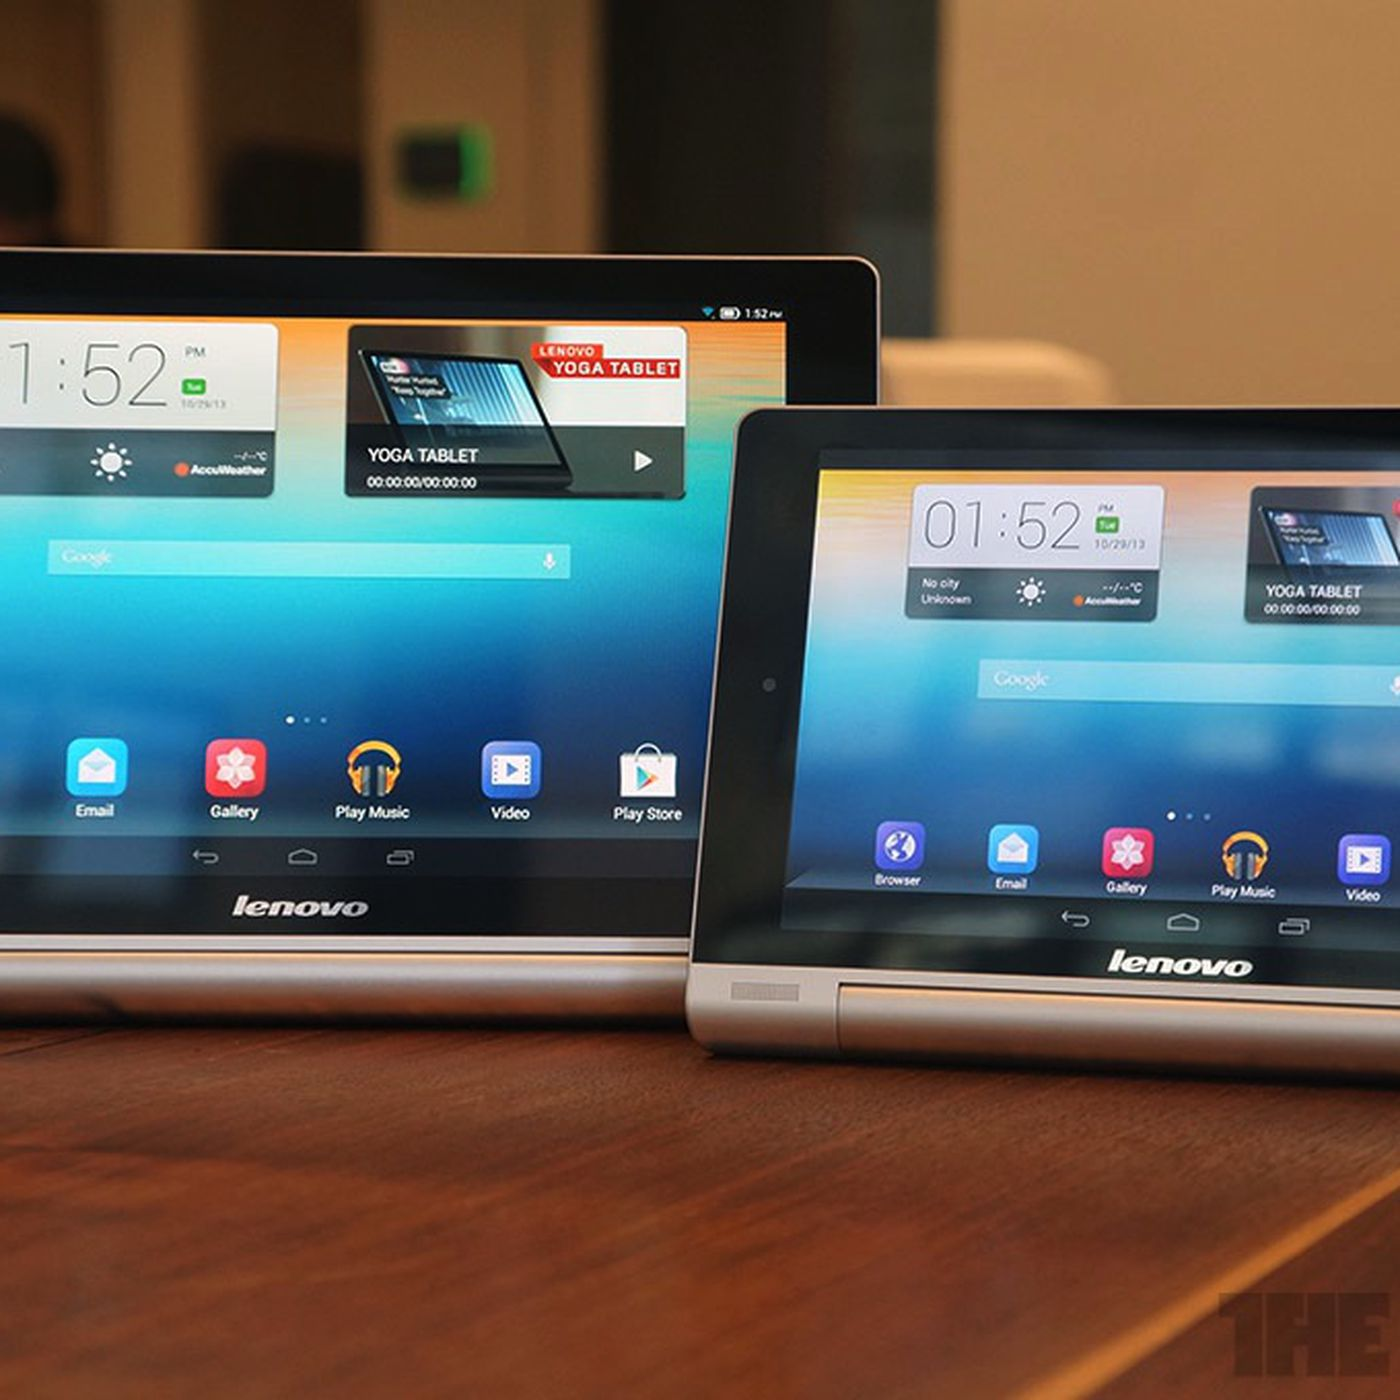 Lenovo expands Yoga range with twisting Android tablets